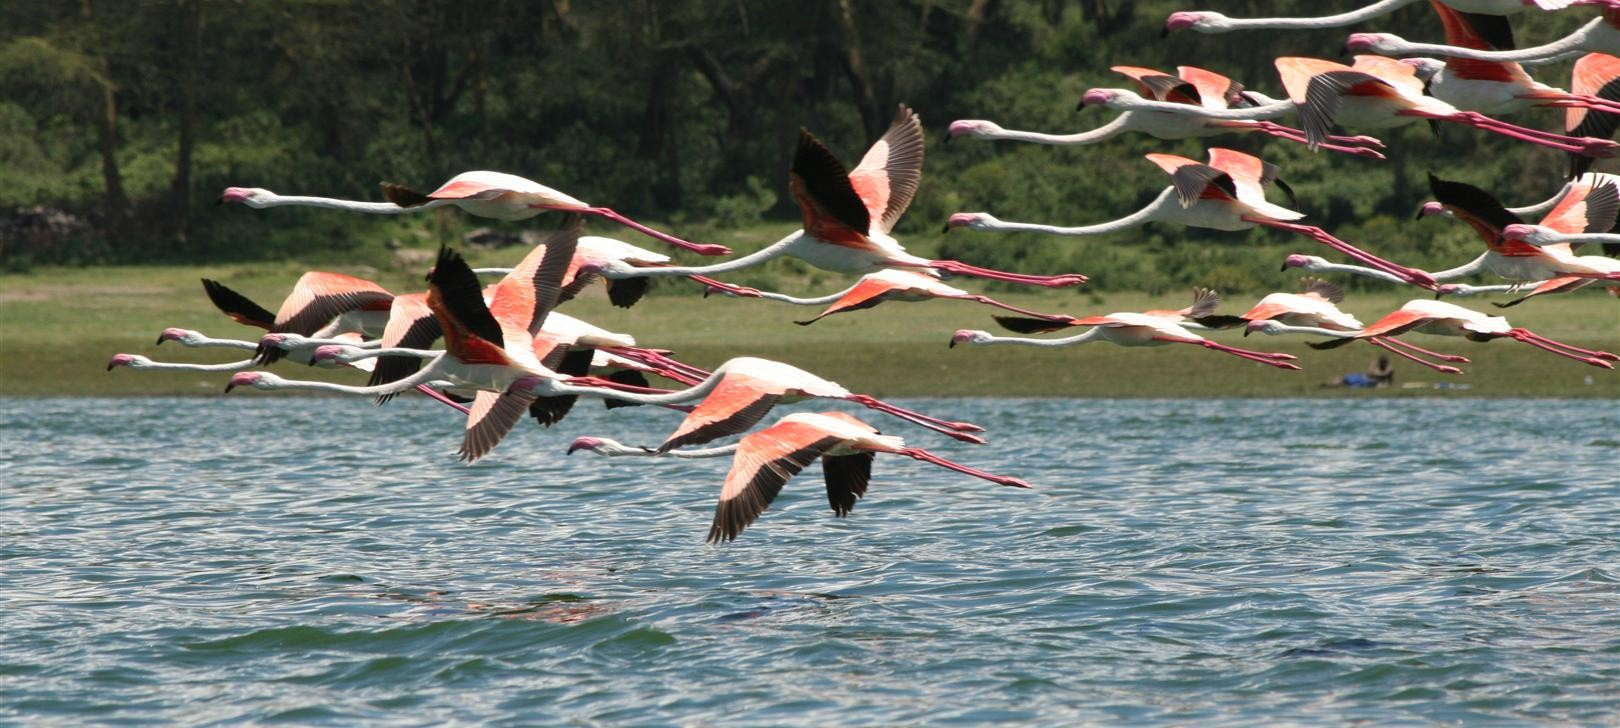 flamingos more (photo by Steward Shang)